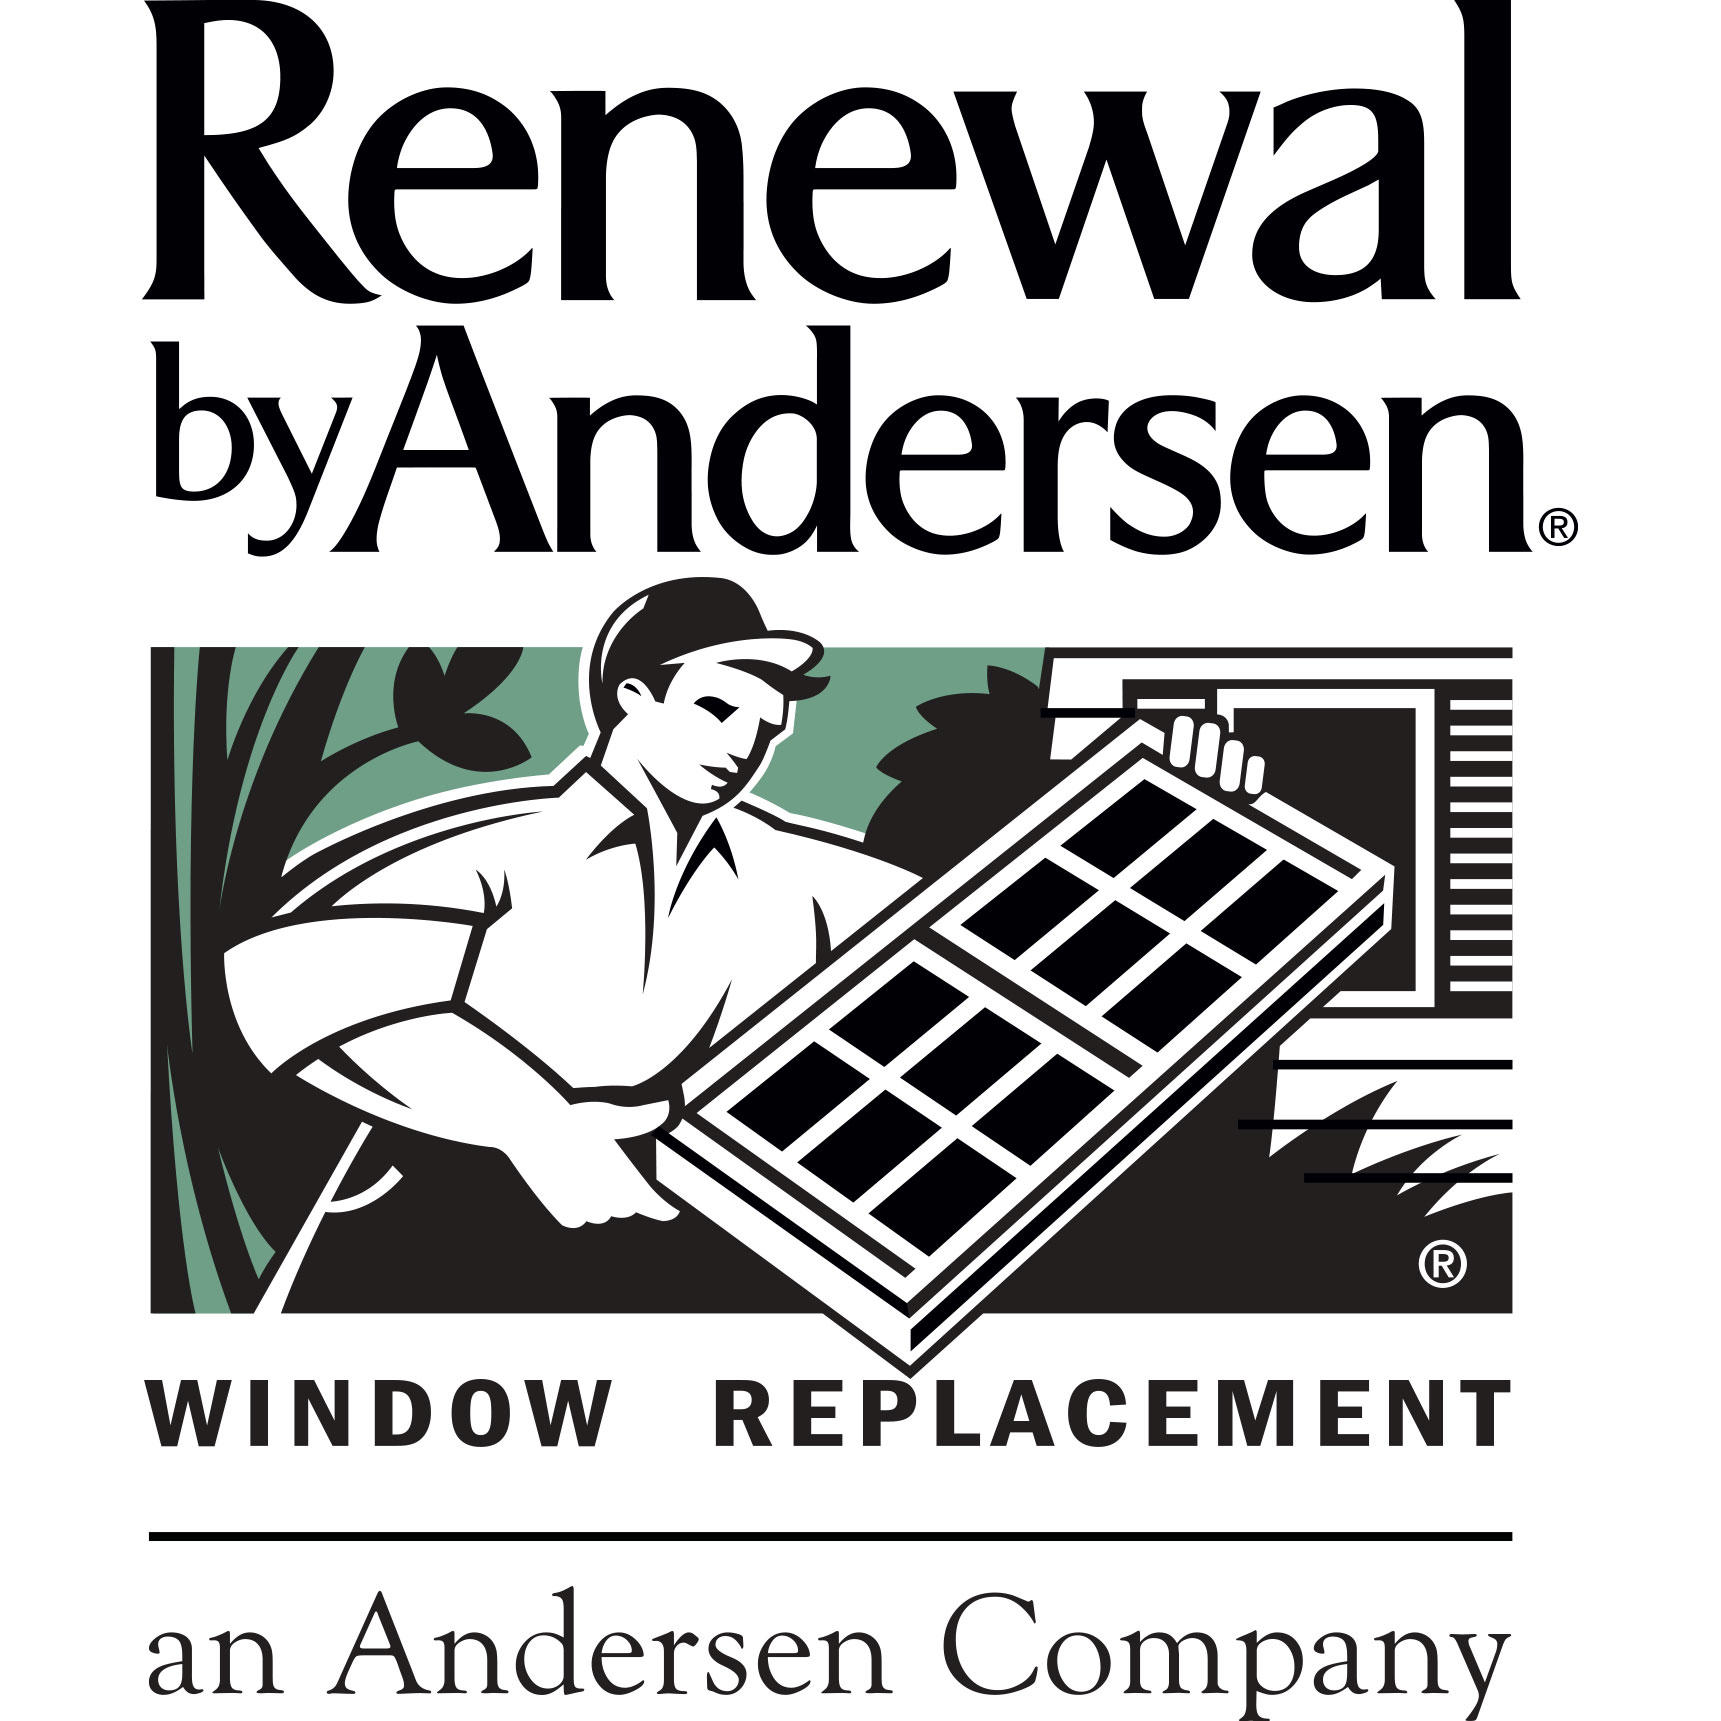 Renewal by Andersen of Knoxville